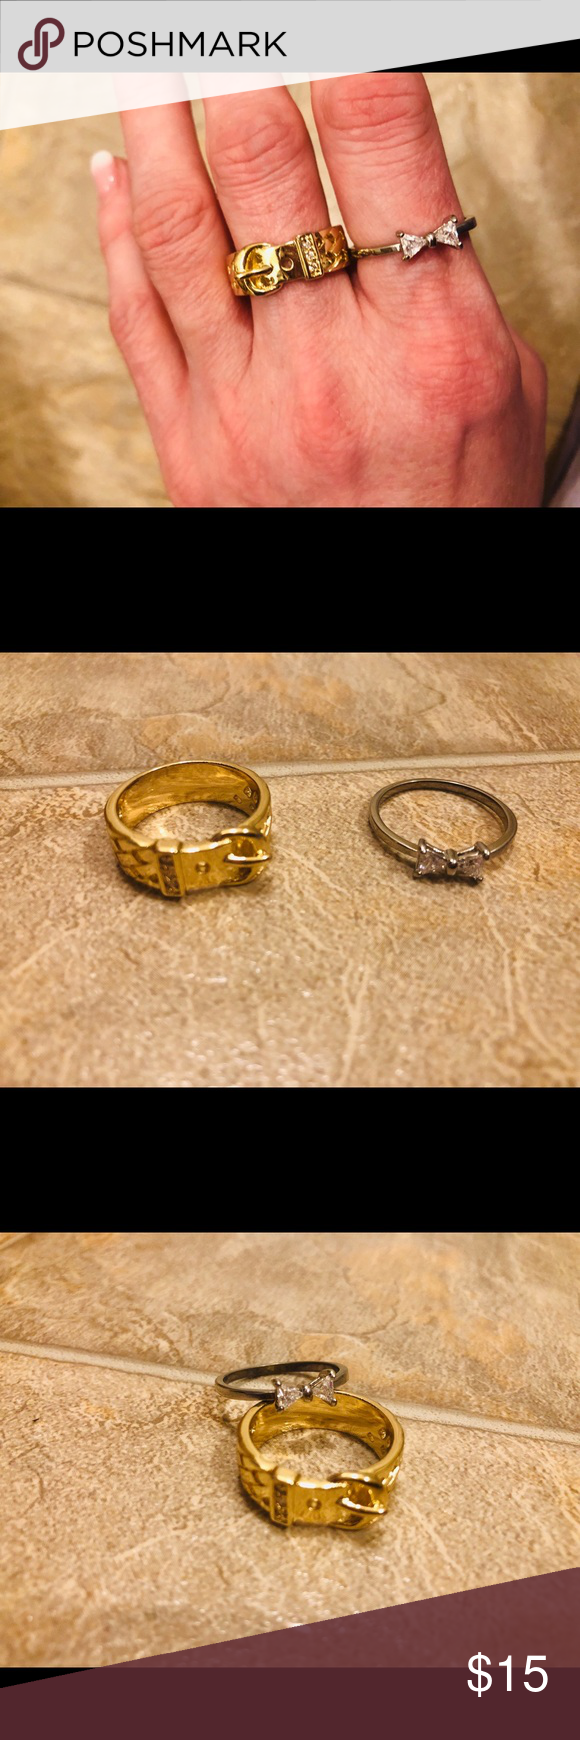 Ring Bundle Rings, Things to sell, Jewelry